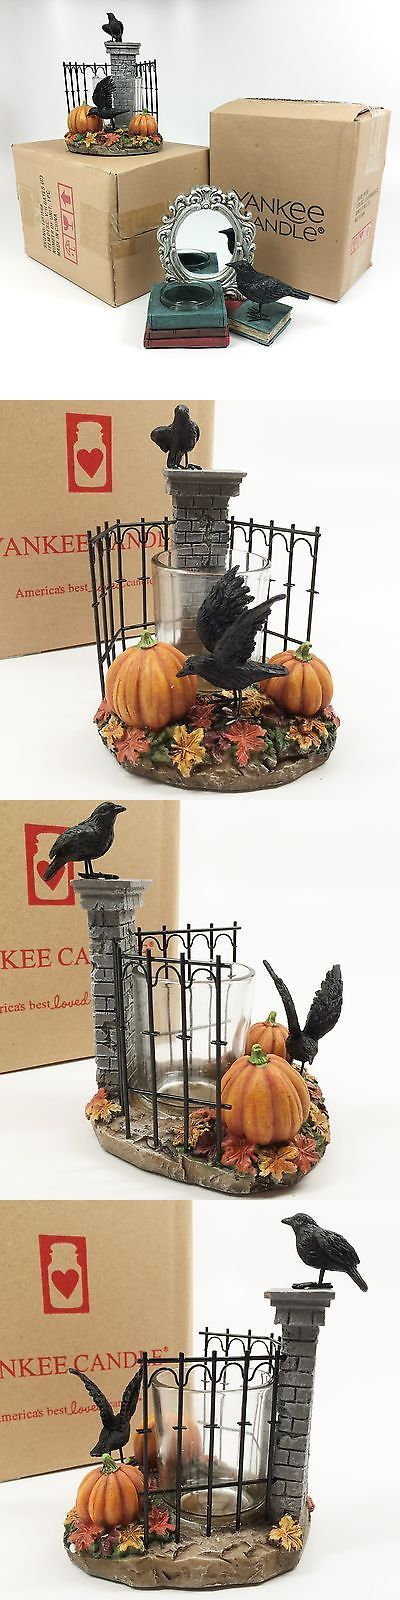 Candle Holders and Accessories 16102: Yankee Candle Raven Spooky Gate Votive And Mirror Crow Books Tea Light Holder Set -> BUY IT NOW ONLY: $49.99 on eBay!